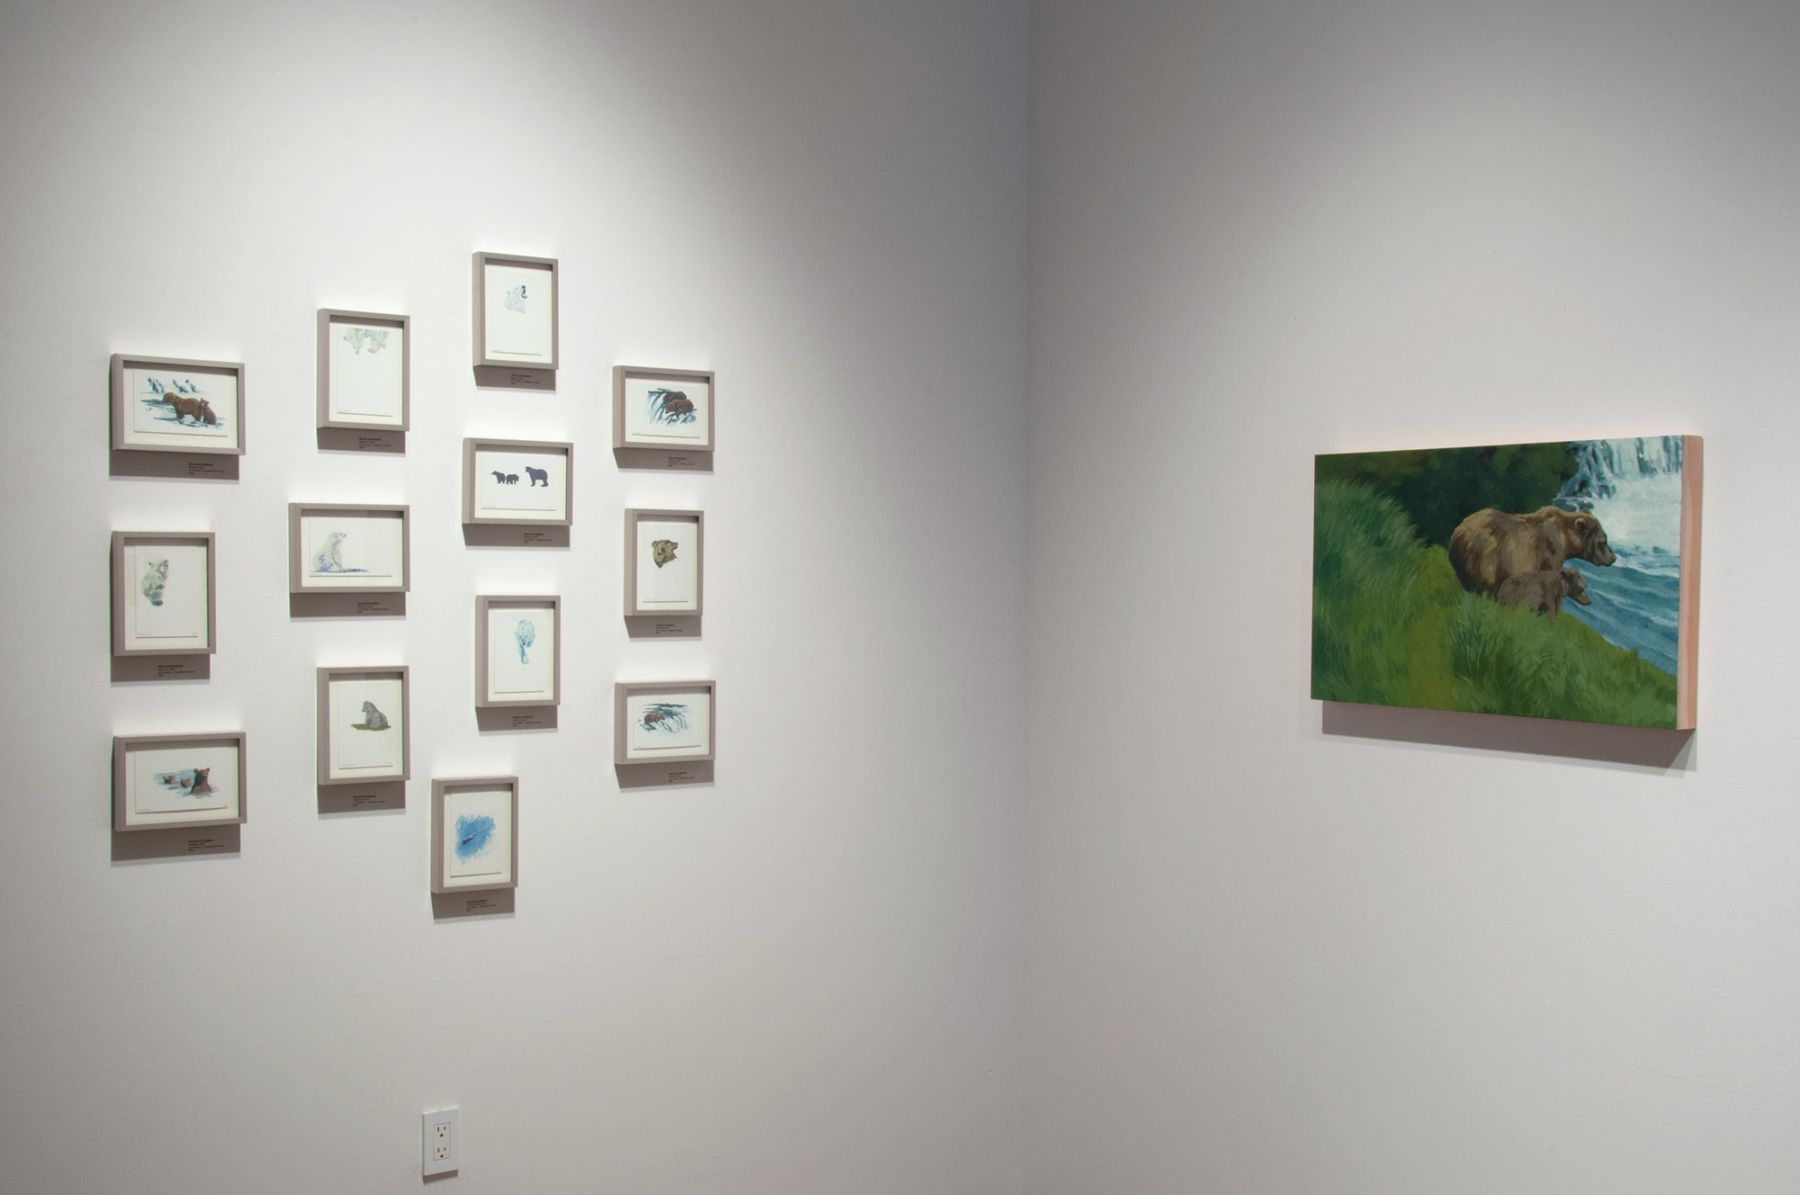 Contemporary Bear Area Artists Installation photograph, Nicole Strasburg